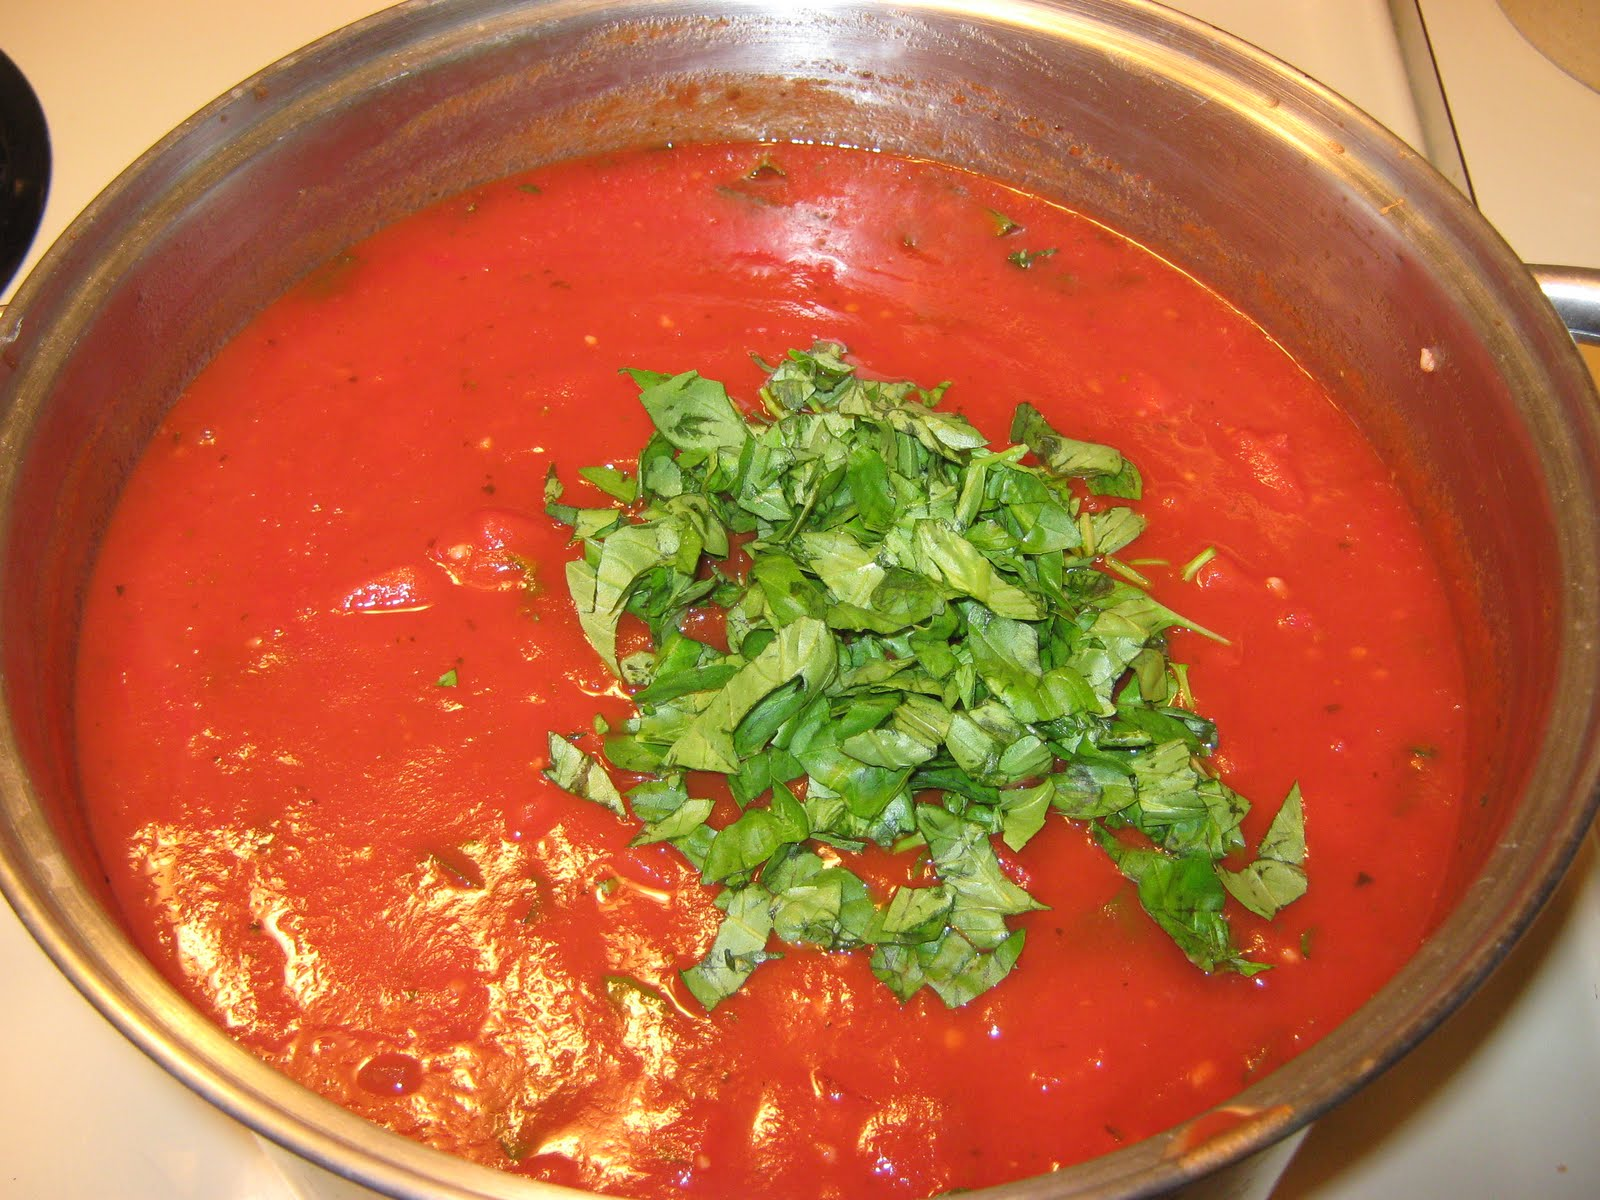 Fake-It Frugal: Homemade Tomato Basil Spaghetti Sauce ...